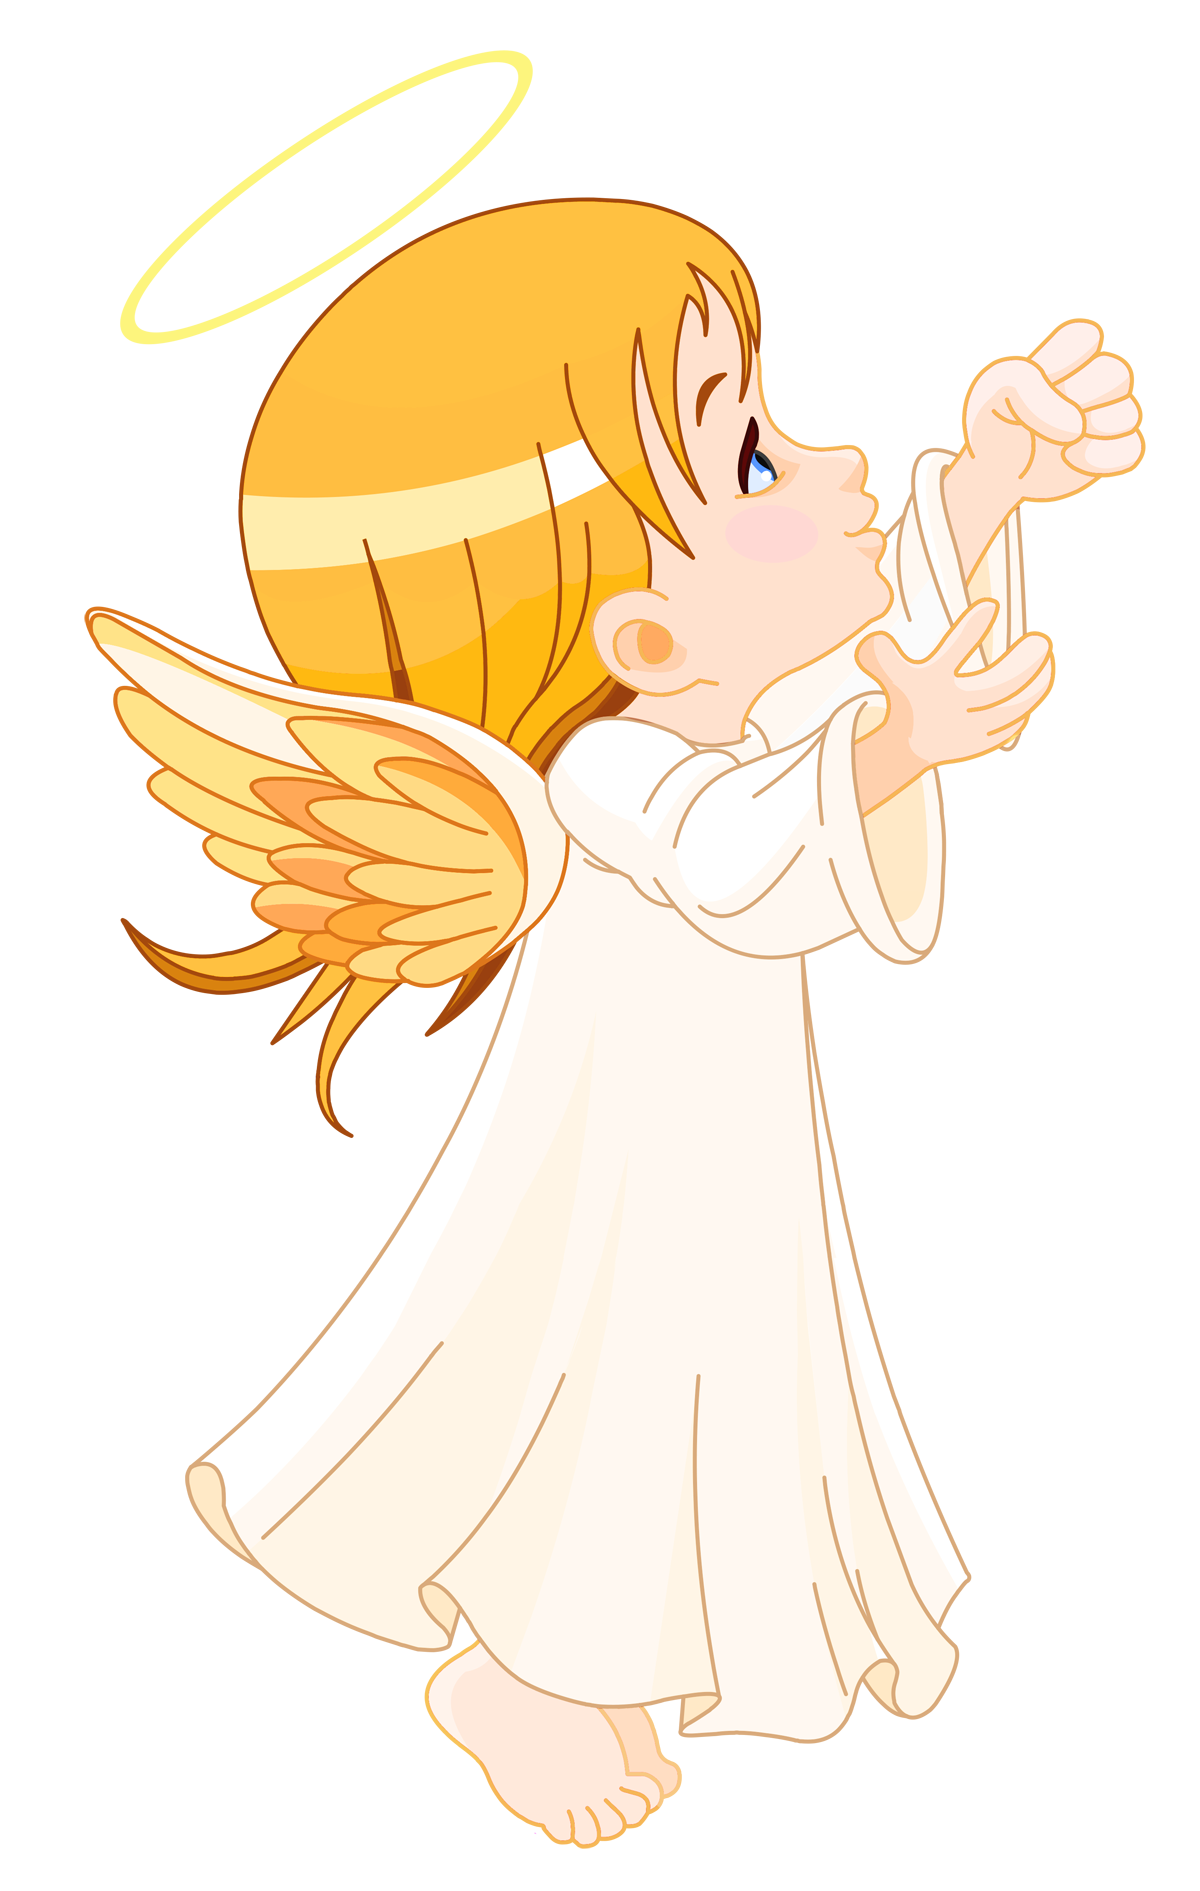 Angels clipart clear background. Angel png images free